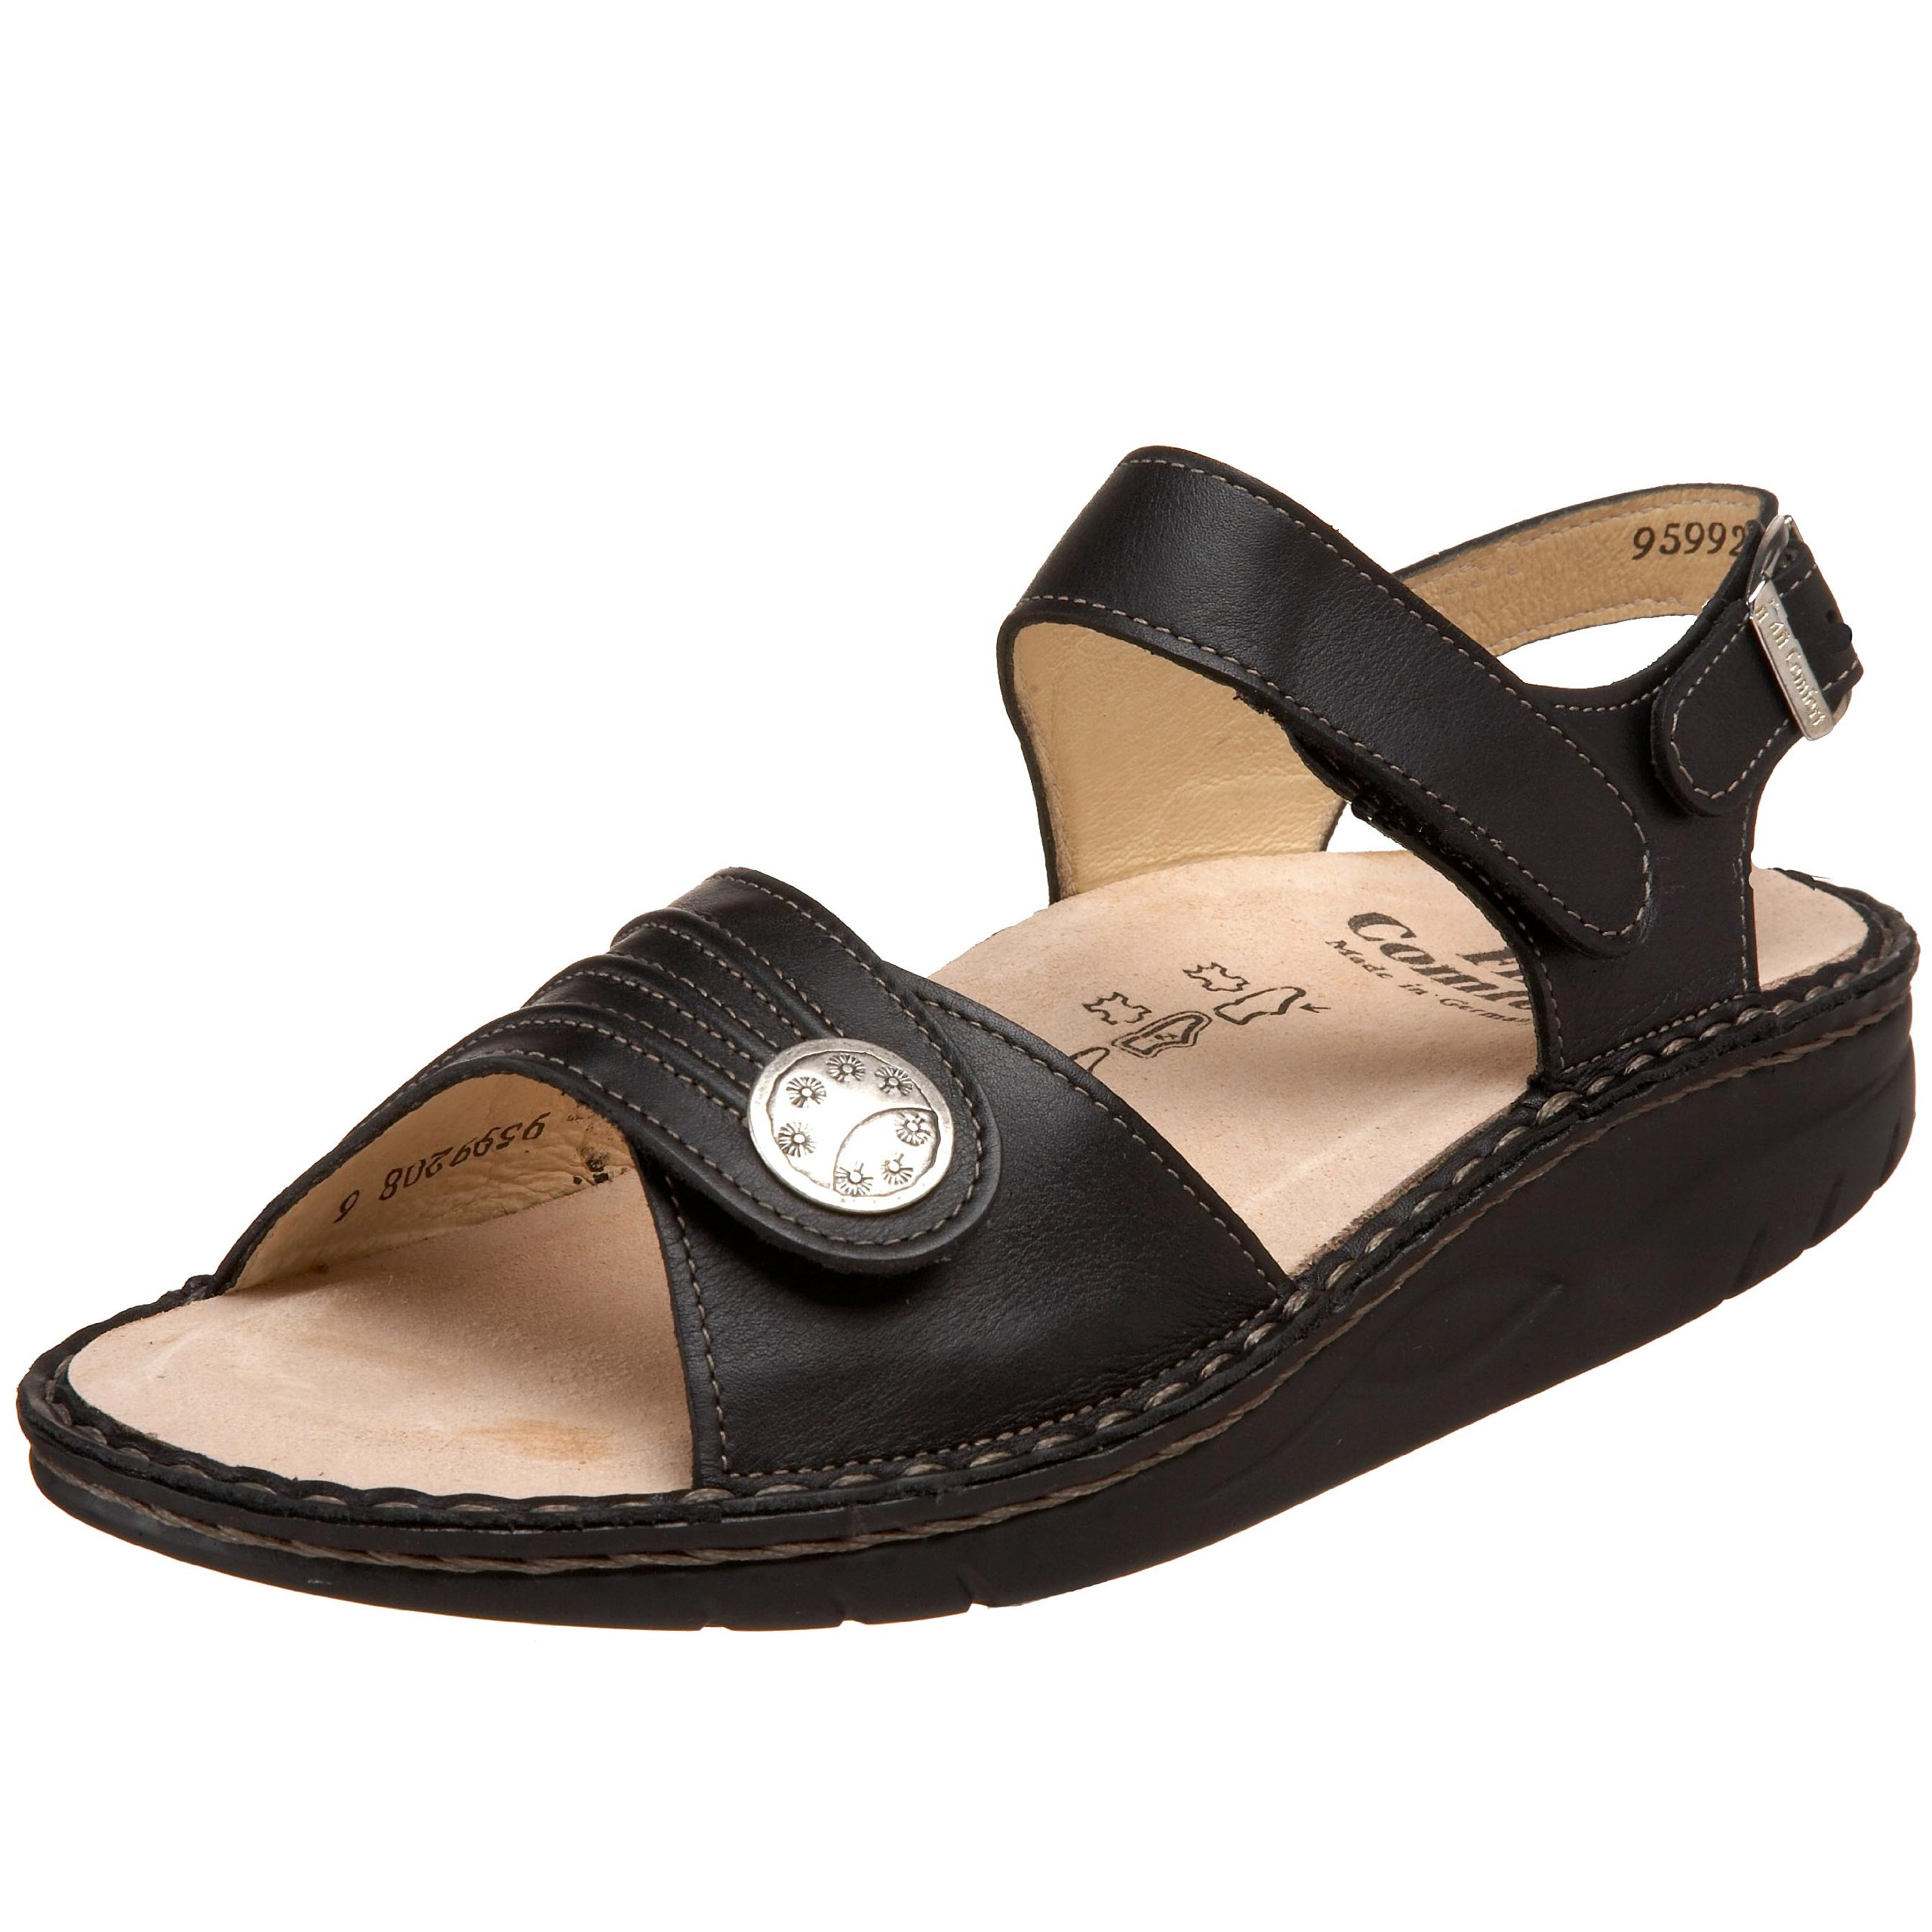 Finn Comfort Sausalito 01572 014099 women sandal in black leather 148, Black, 4 F UK by Finn Comfort